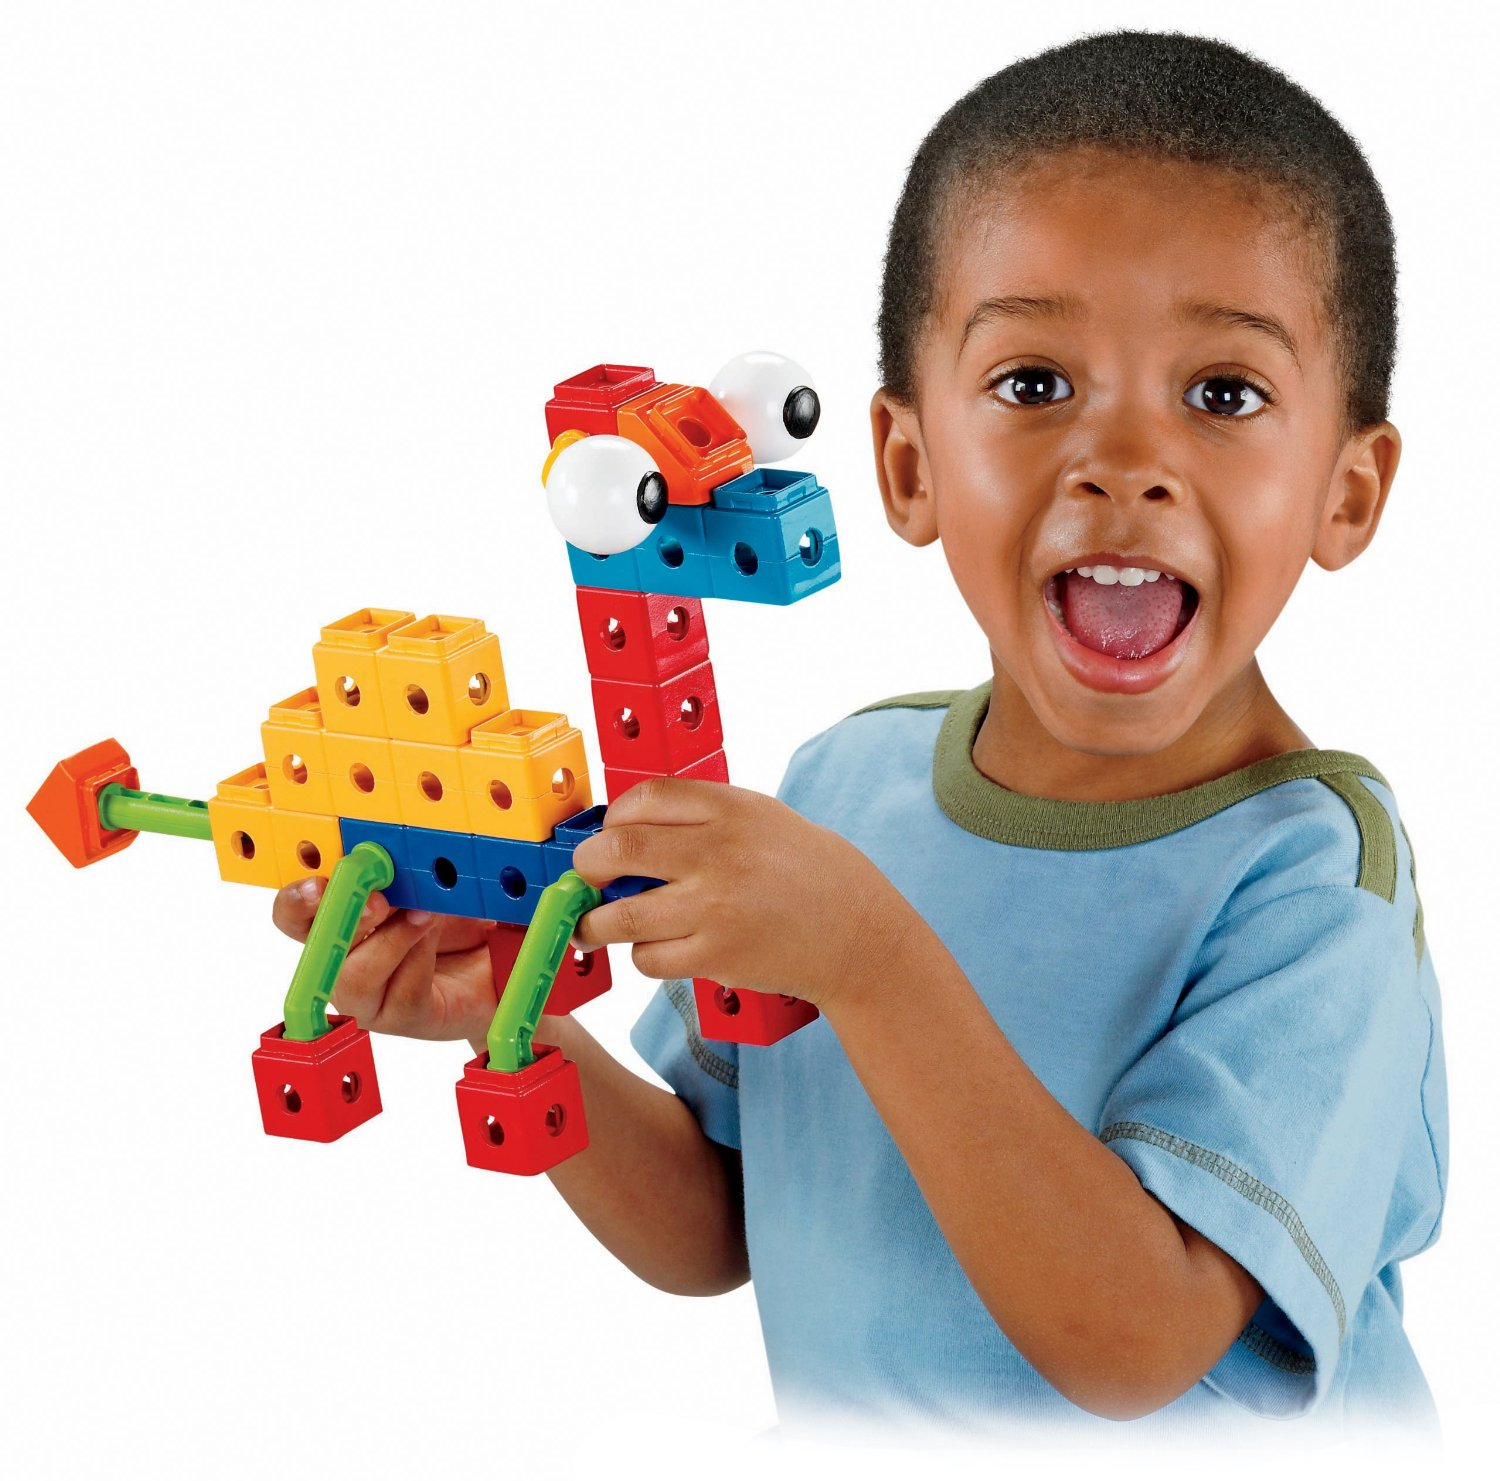 Toy Building Set For Boys : Of the best construction toys for kids